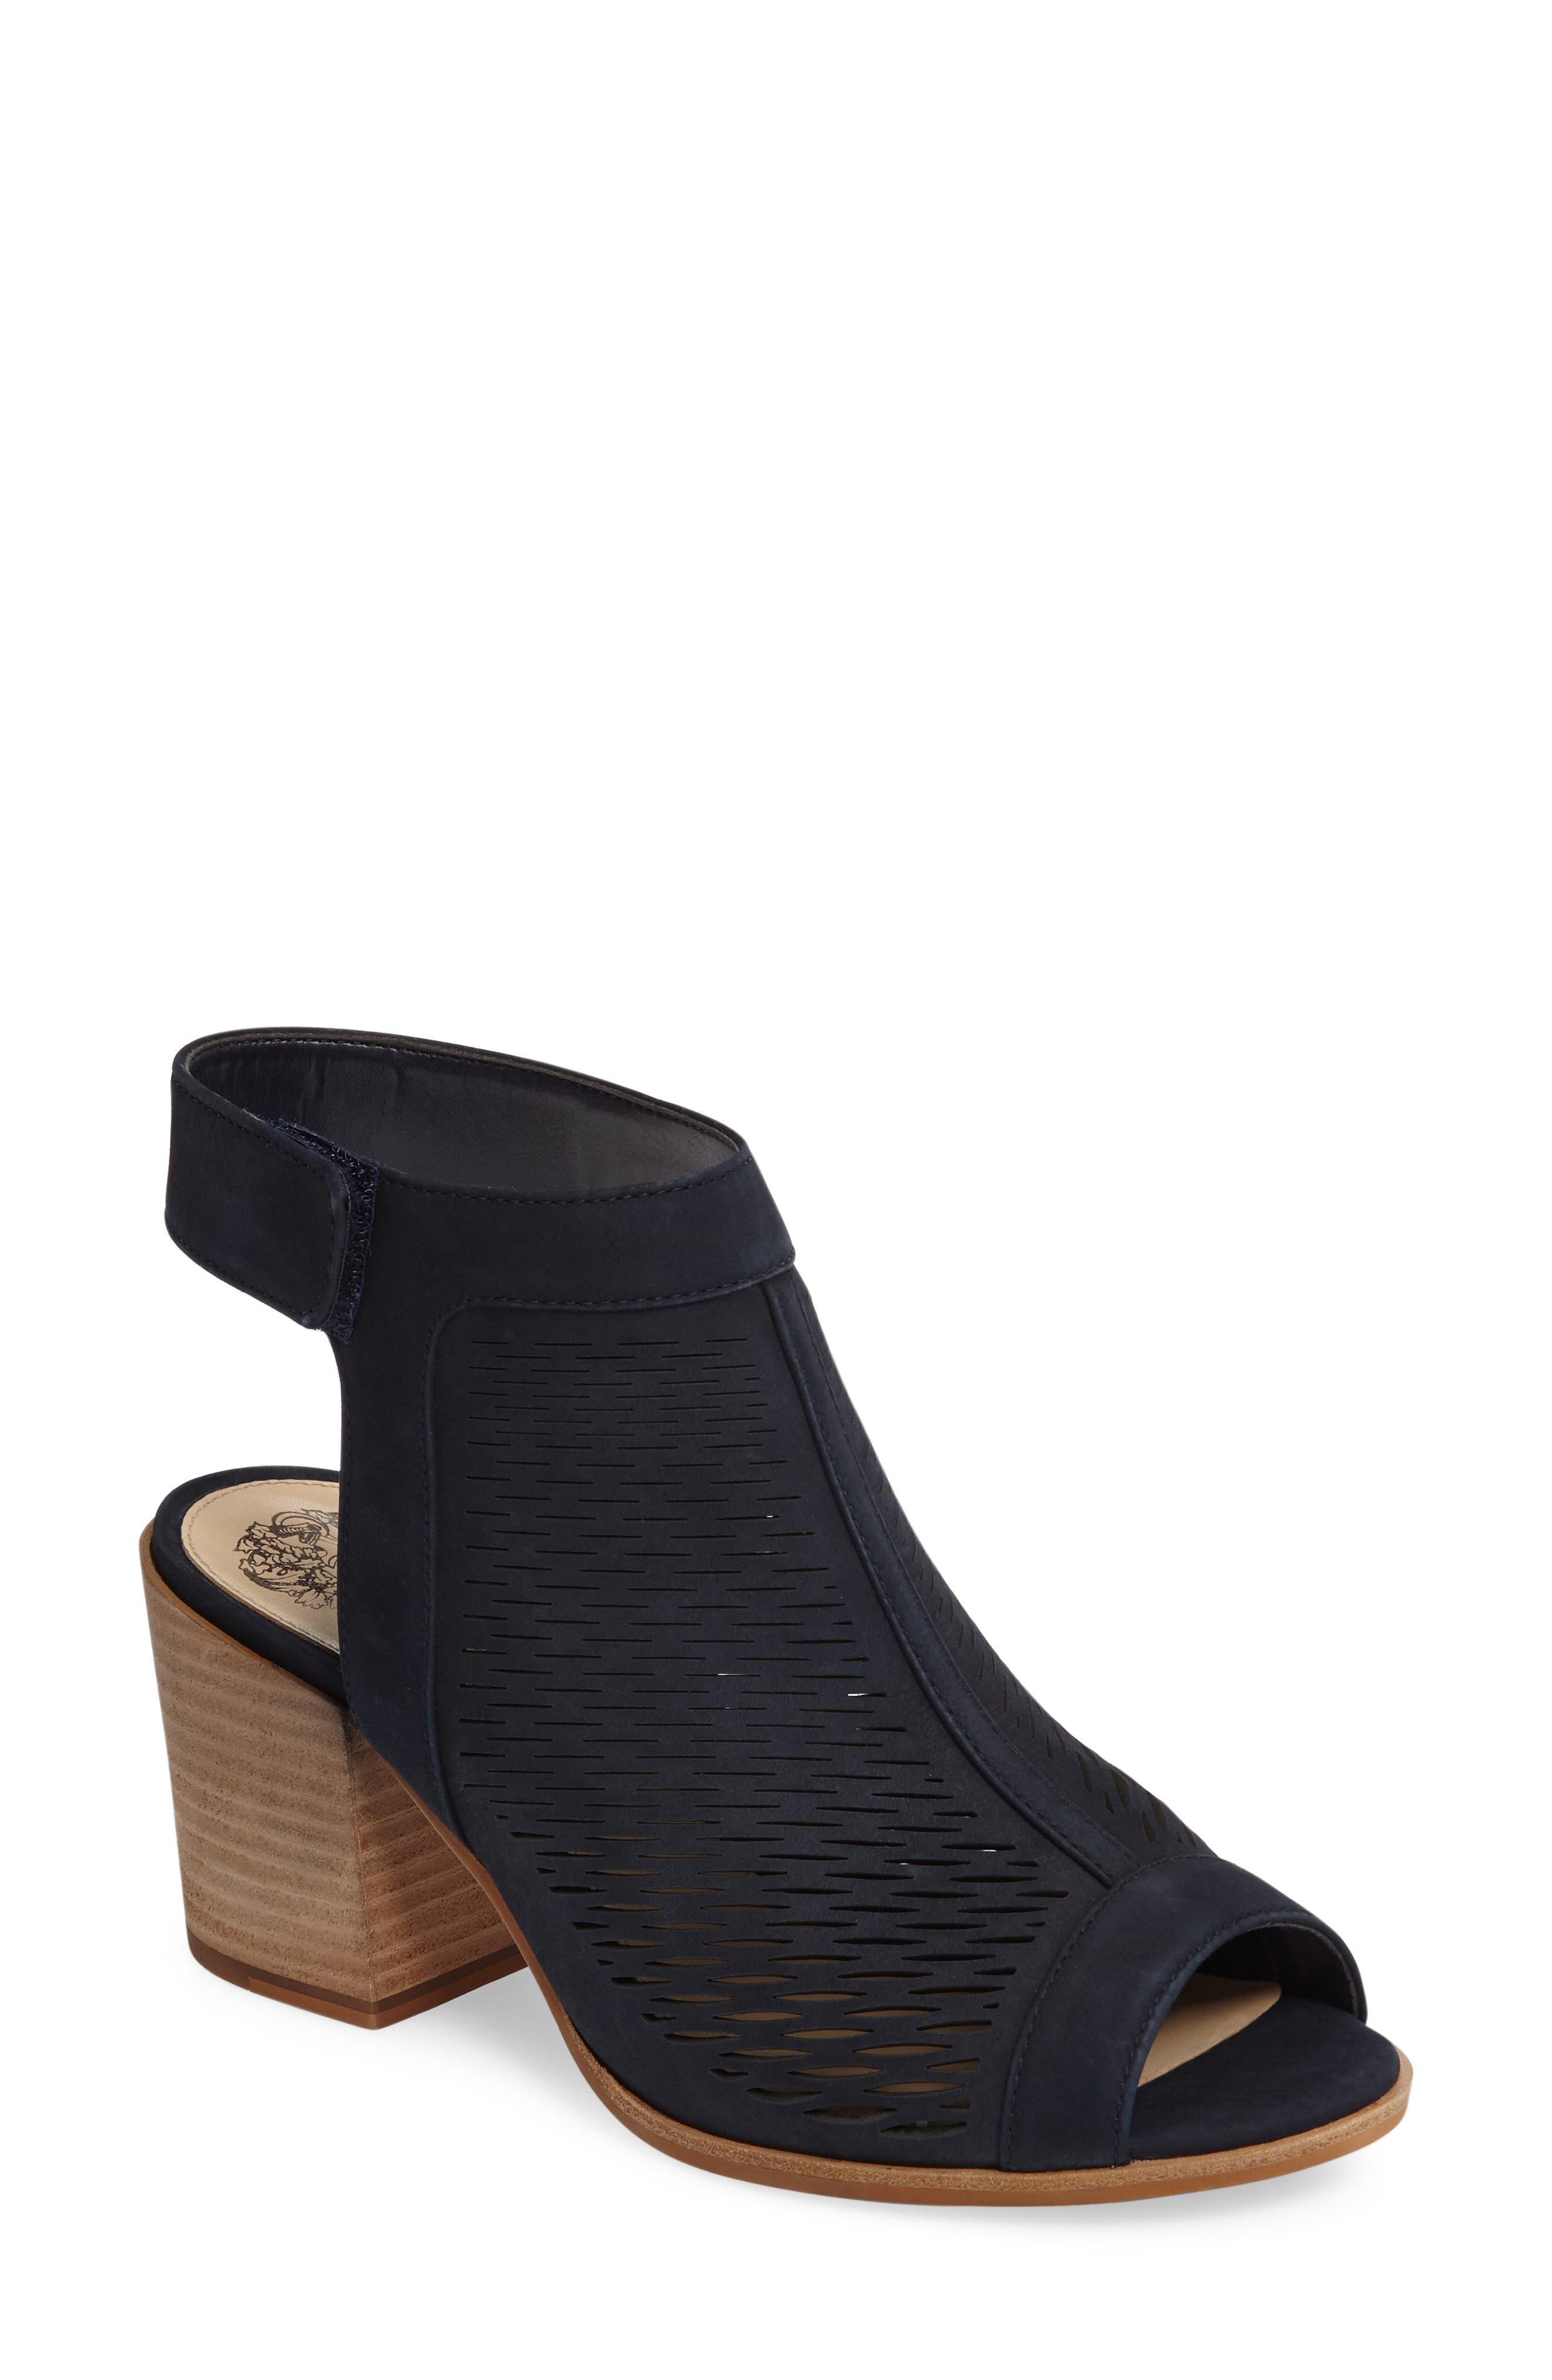 Image of Vince Camuto Lavette Perforated Peep Toe Bootie